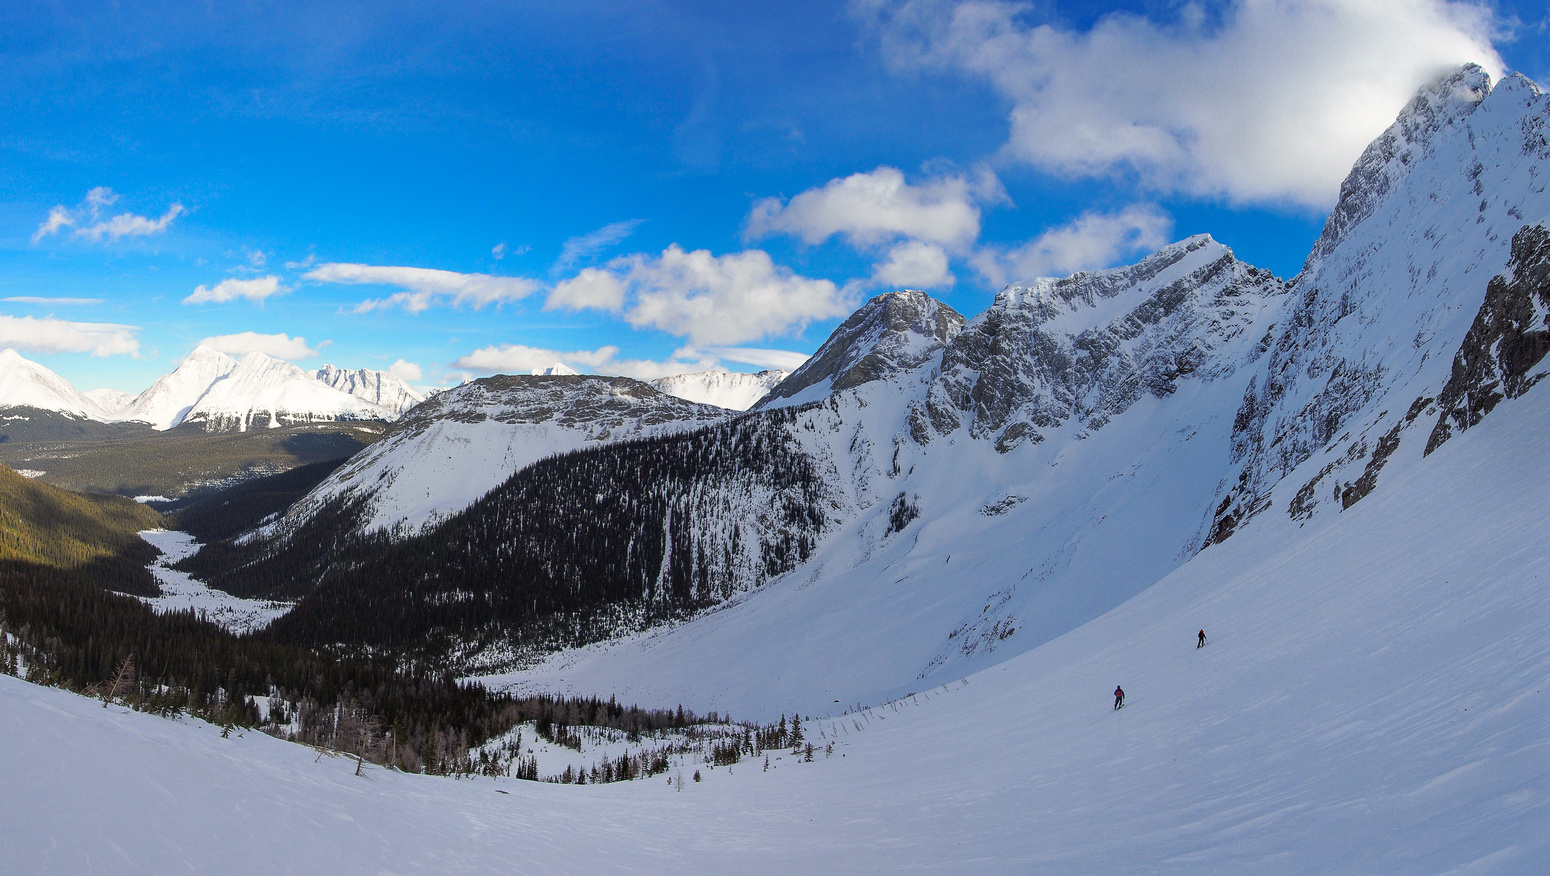 Skiing down to Smuts Valley from Smuts Pass wasn't the best skiing we've ever done. But it sure beat snow shoeing!!!!